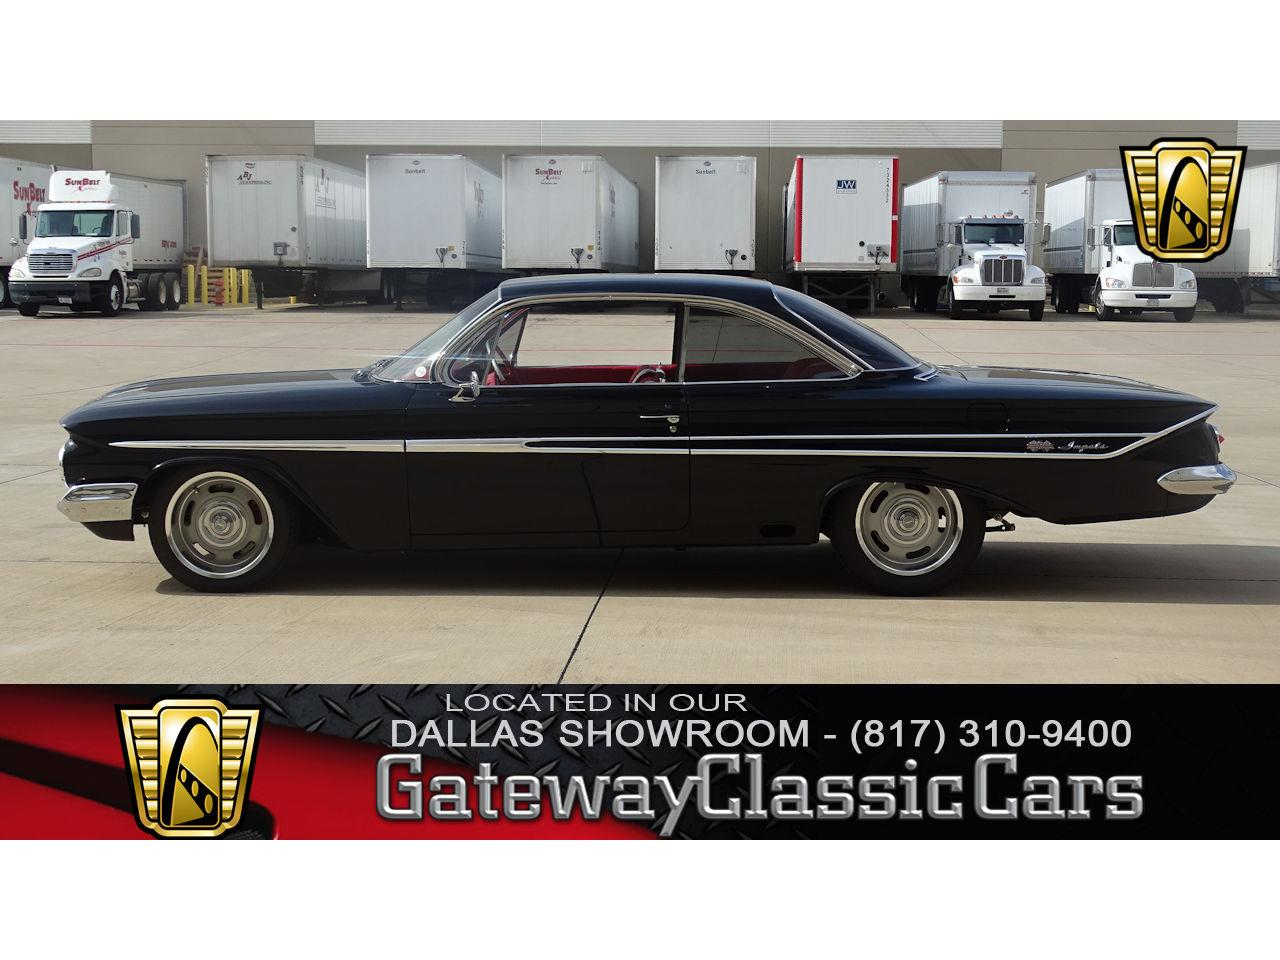 For Sale: 1961 Chevrolet Impala in DFW Airport, Texas